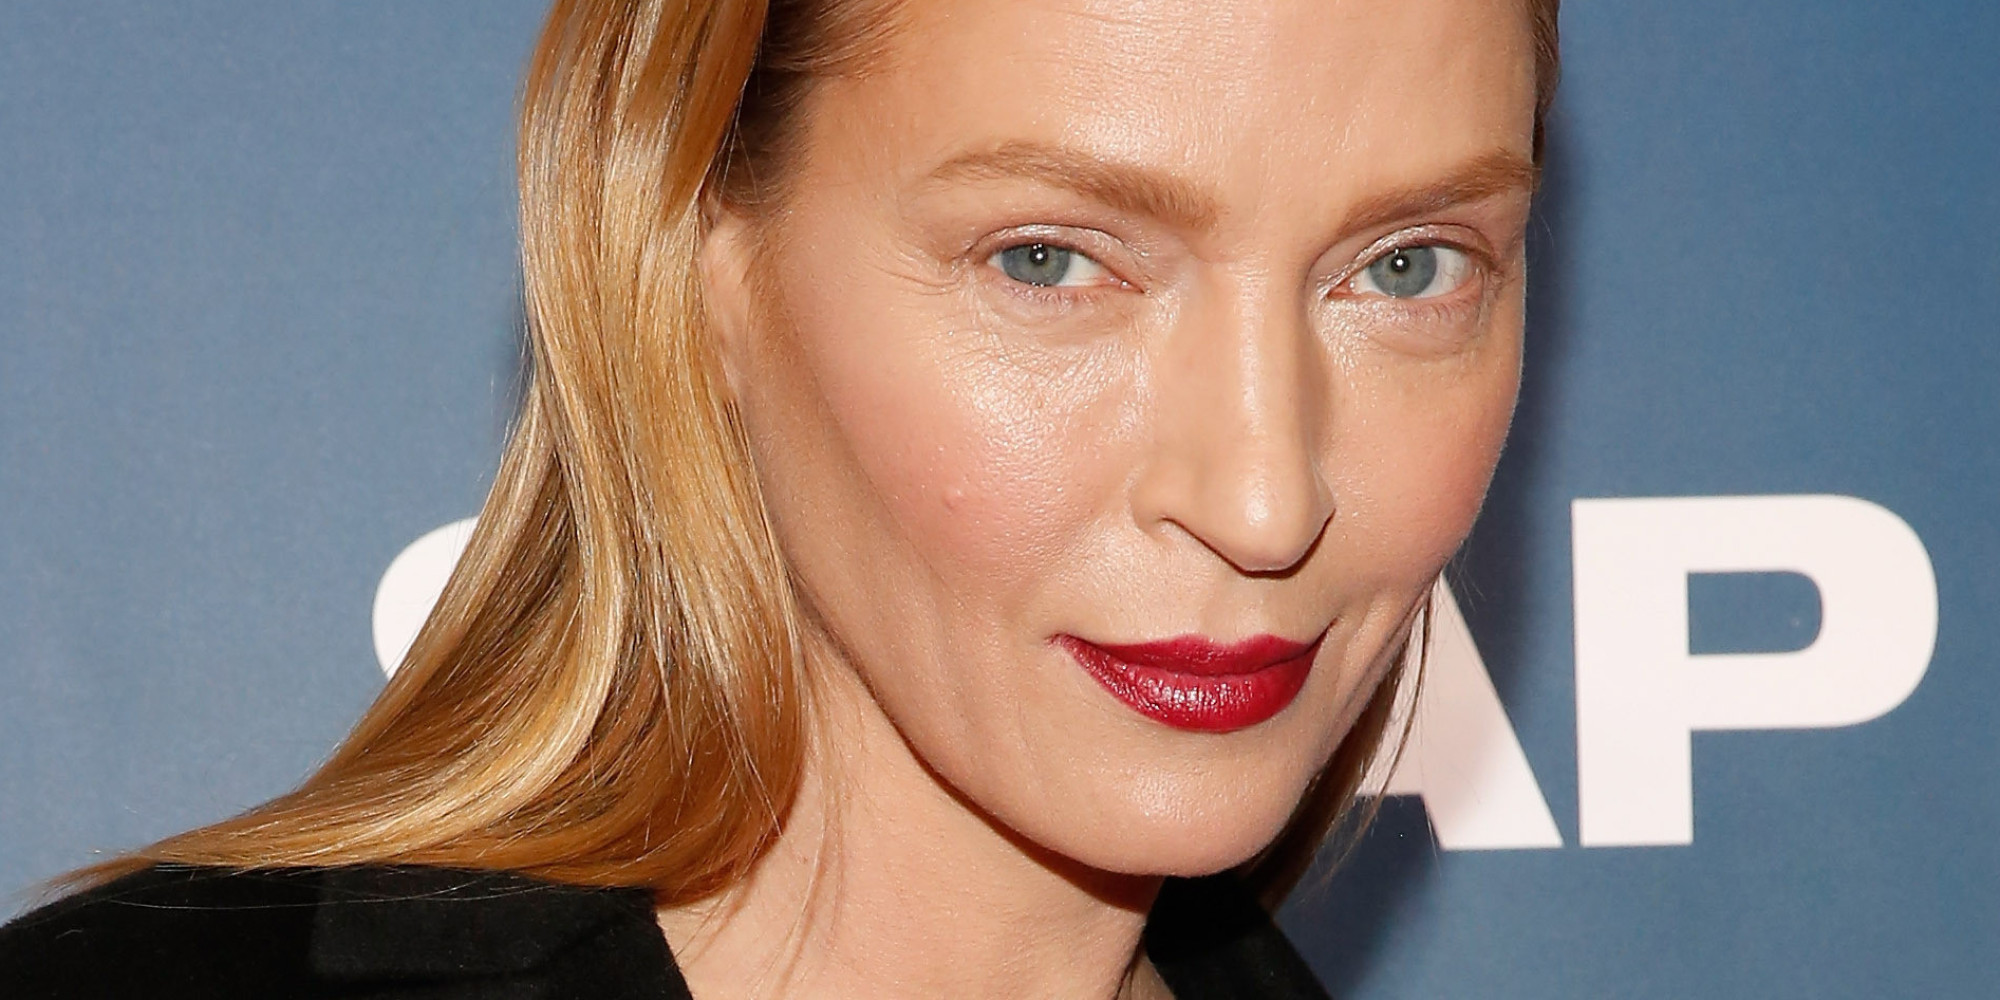 Uma Thurman Is Fresh-Faced And Gorgeous On The Red Carpet